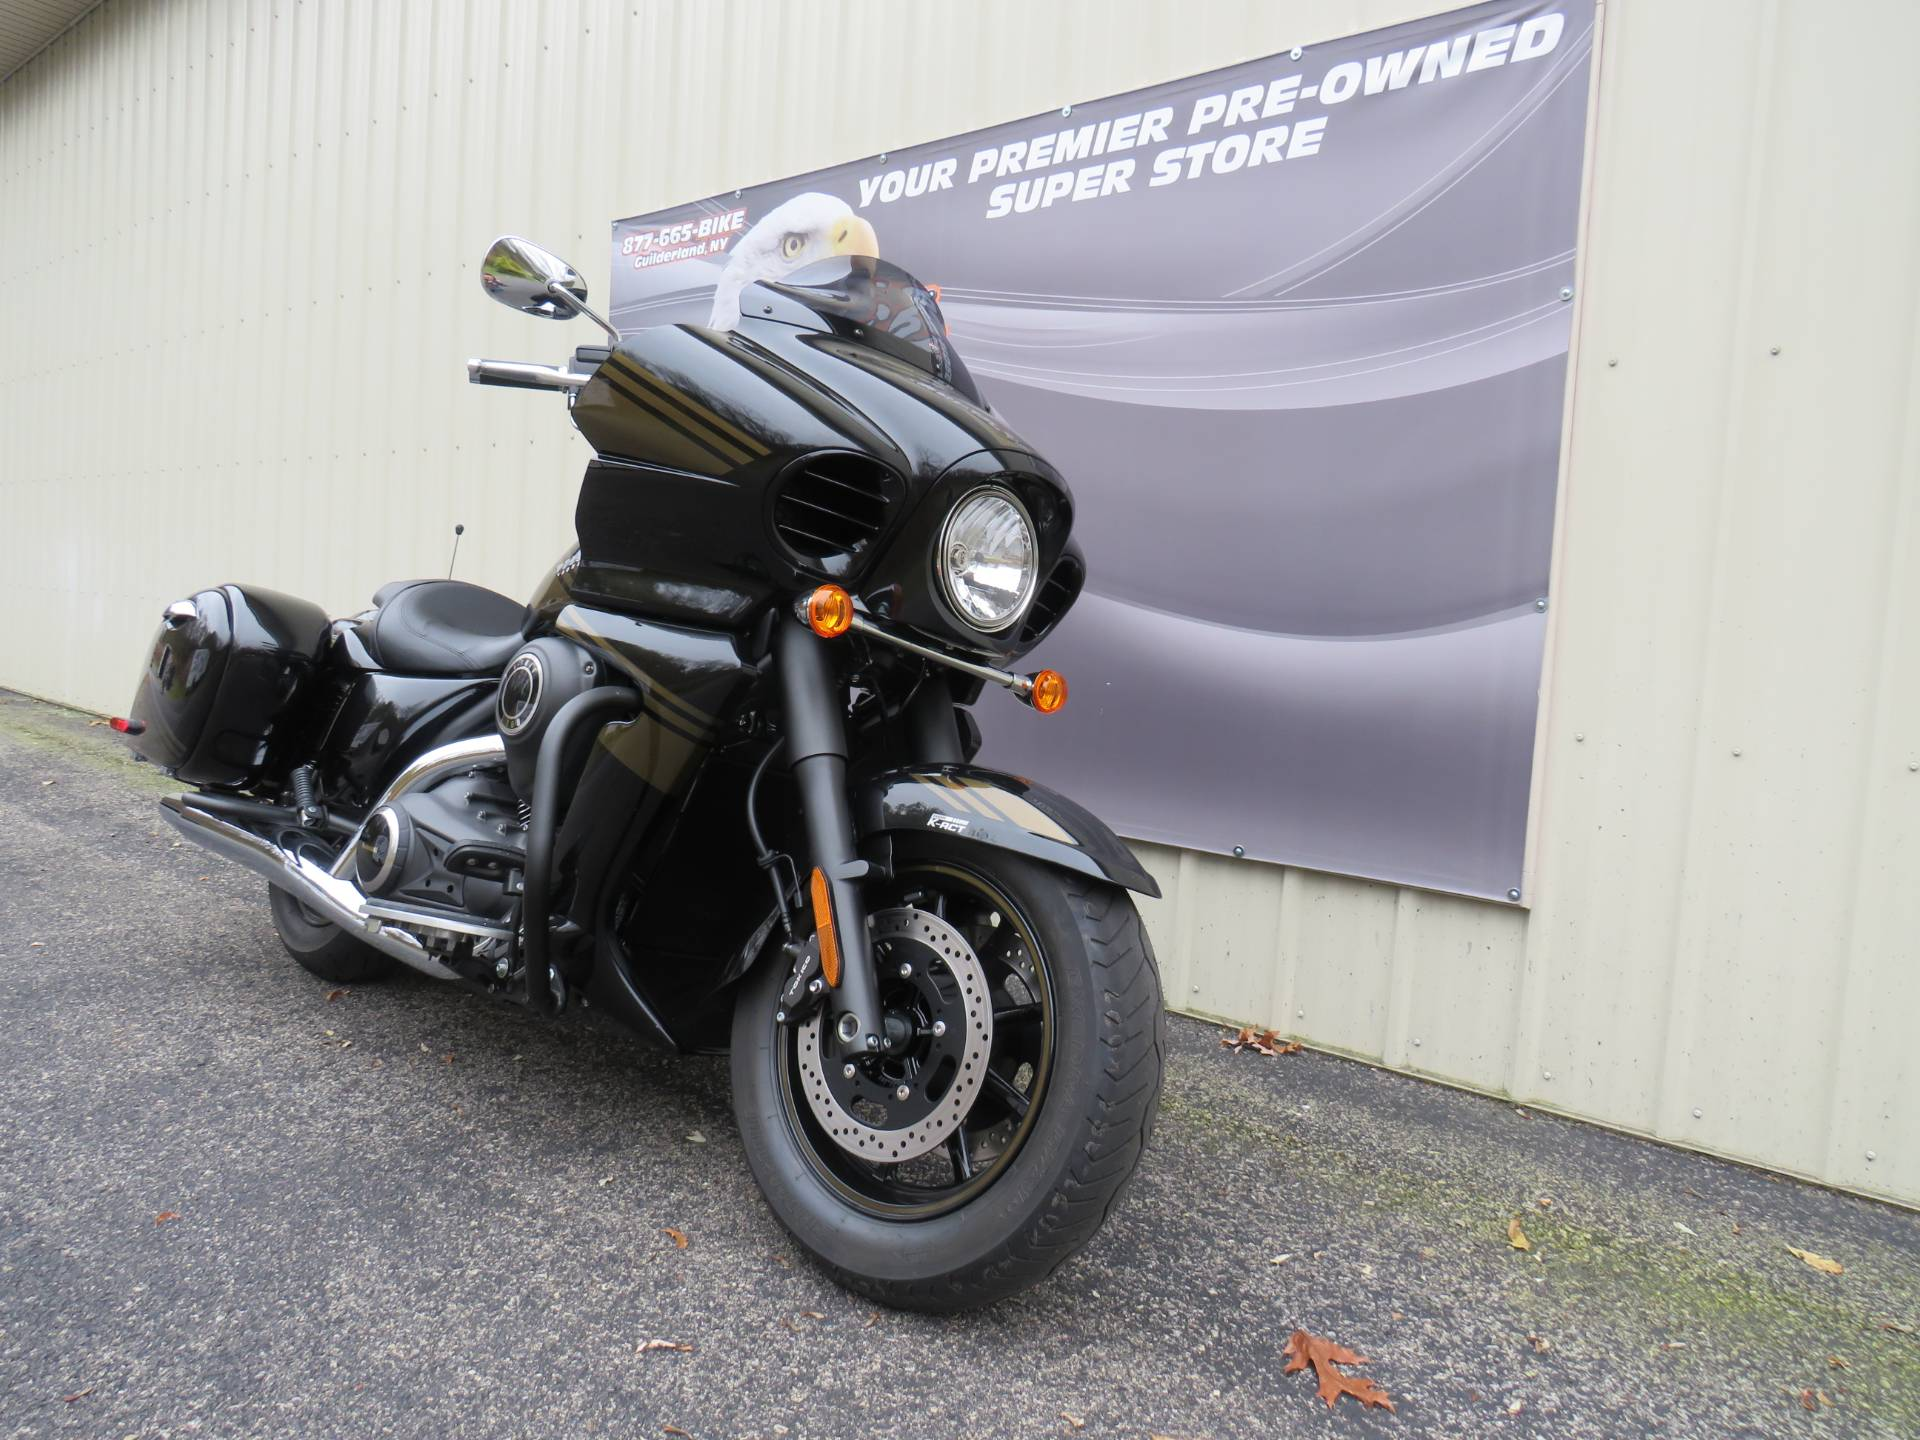 2019 Kawasaki Vulcan 1700 Vaquero ABS in Guilderland, New York - Photo 2